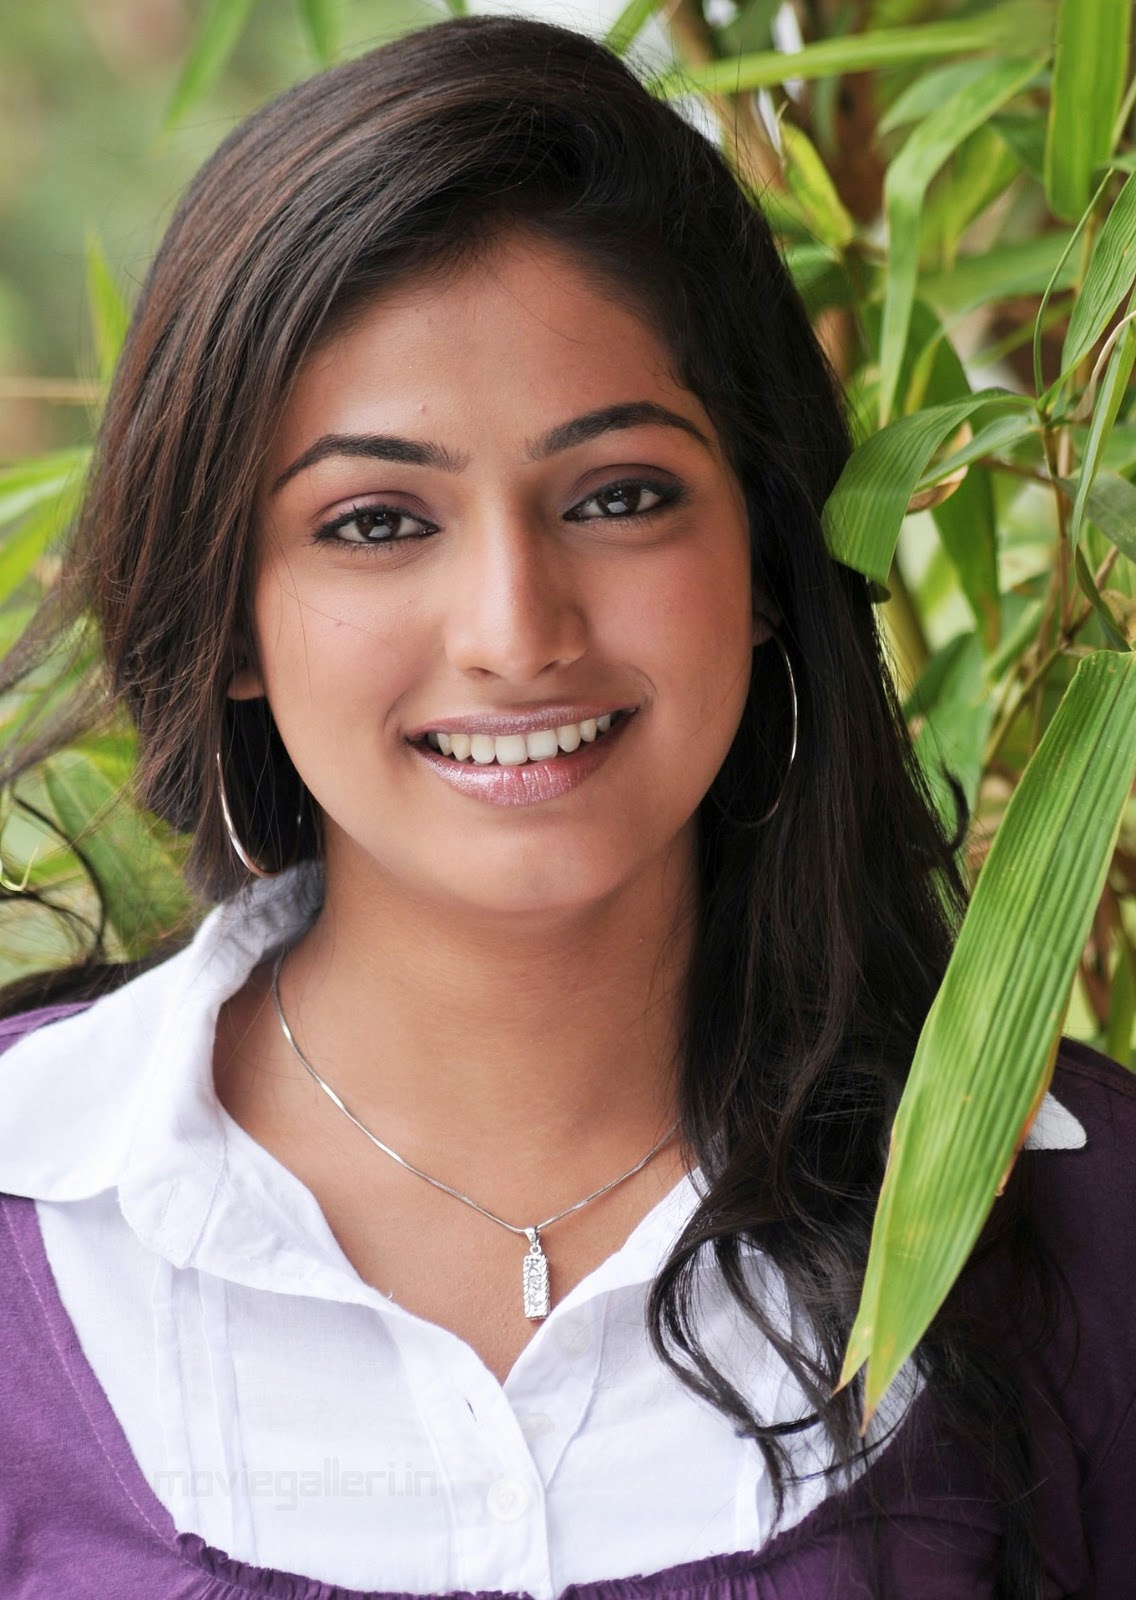 http://2.bp.blogspot.com/_eewr1b1LpYA/TLsaSSsDyGI/AAAAAAAAJKY/WMnC1bqge2o/s1600/actress_haripriya_photo_gallery_wallpapers_01.jpg